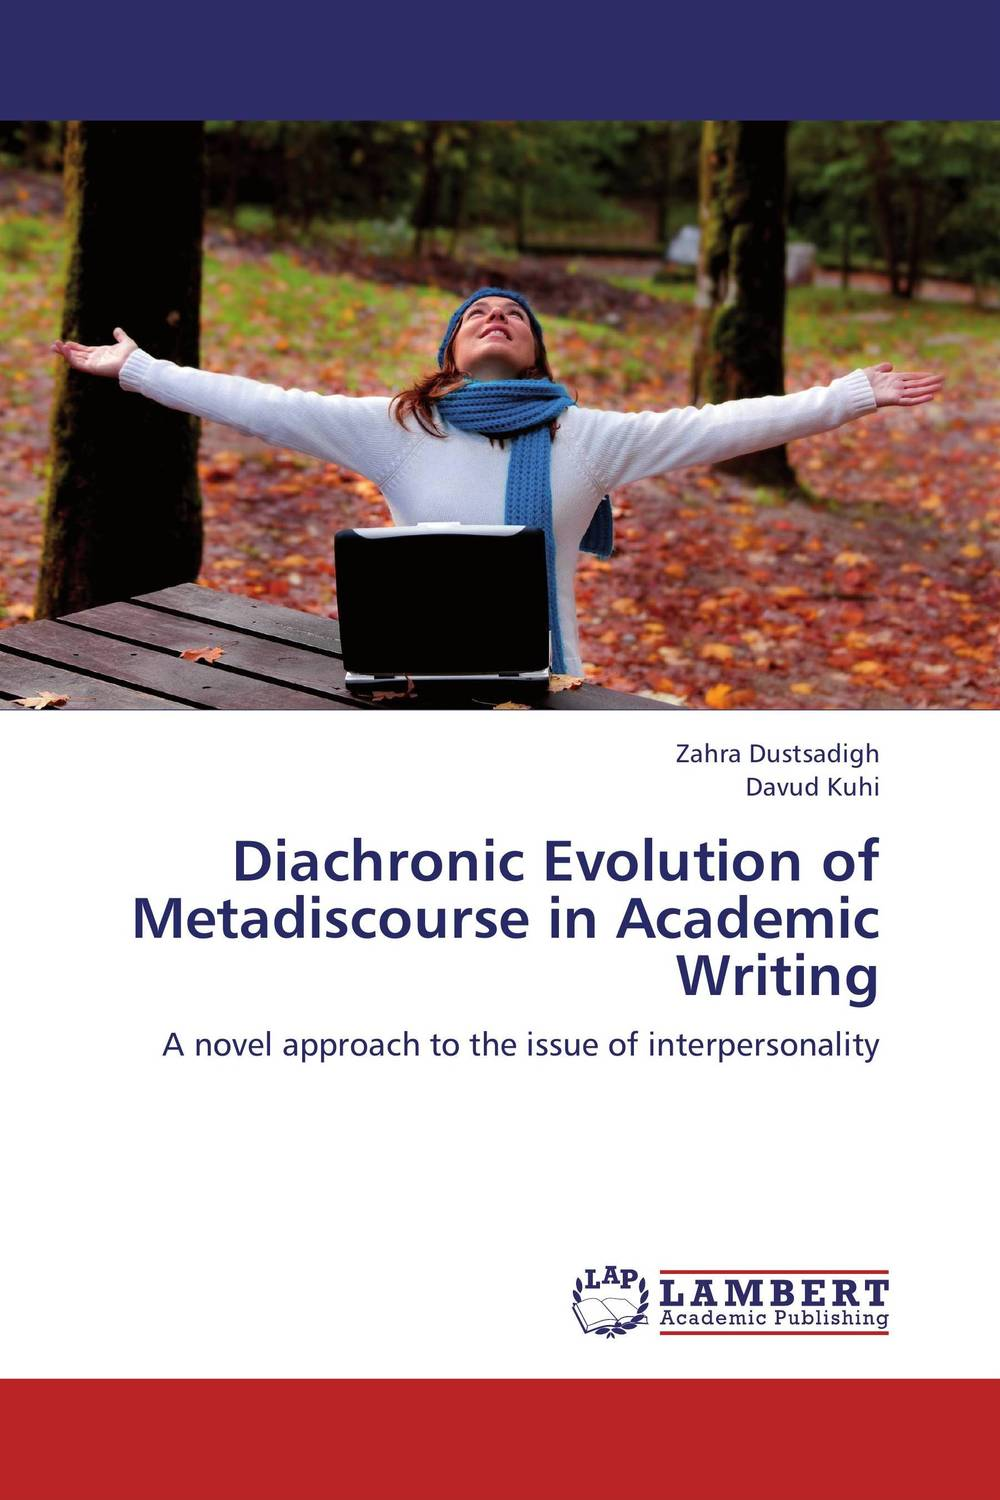 Diachronic Evolution of Metadiscourse in Academic Writing